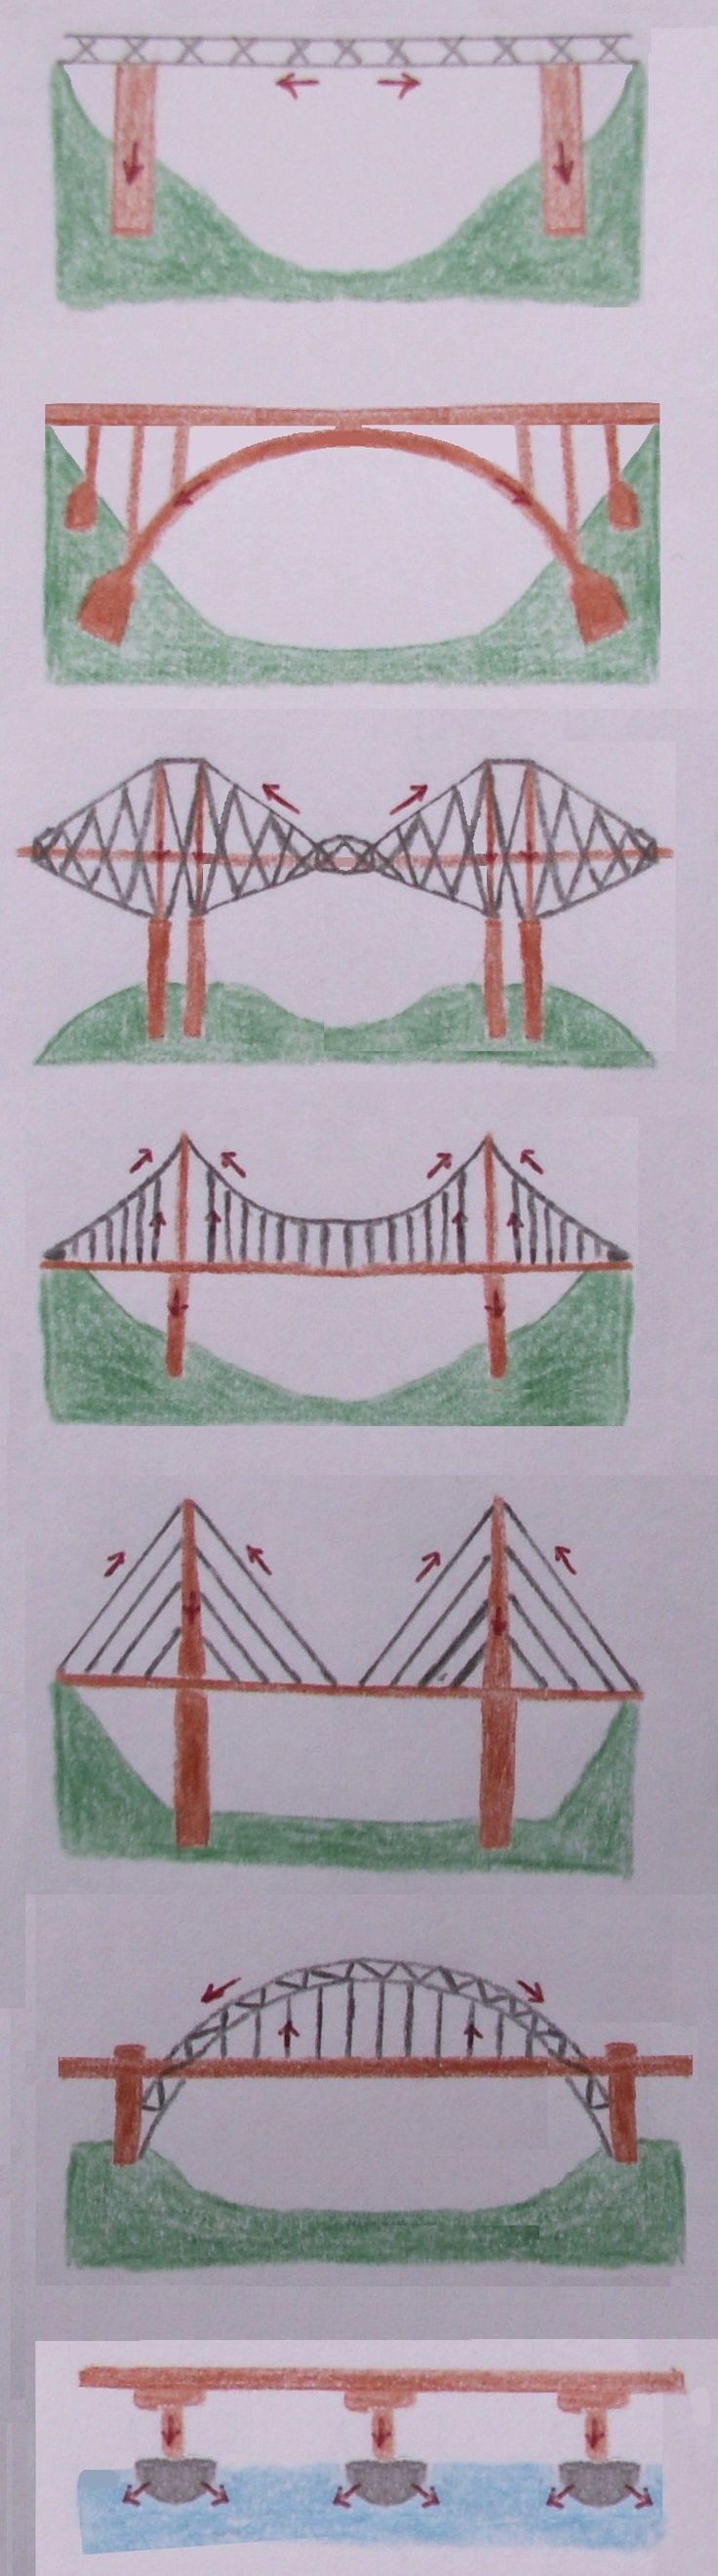 These are some of the types of bridges that we can build.